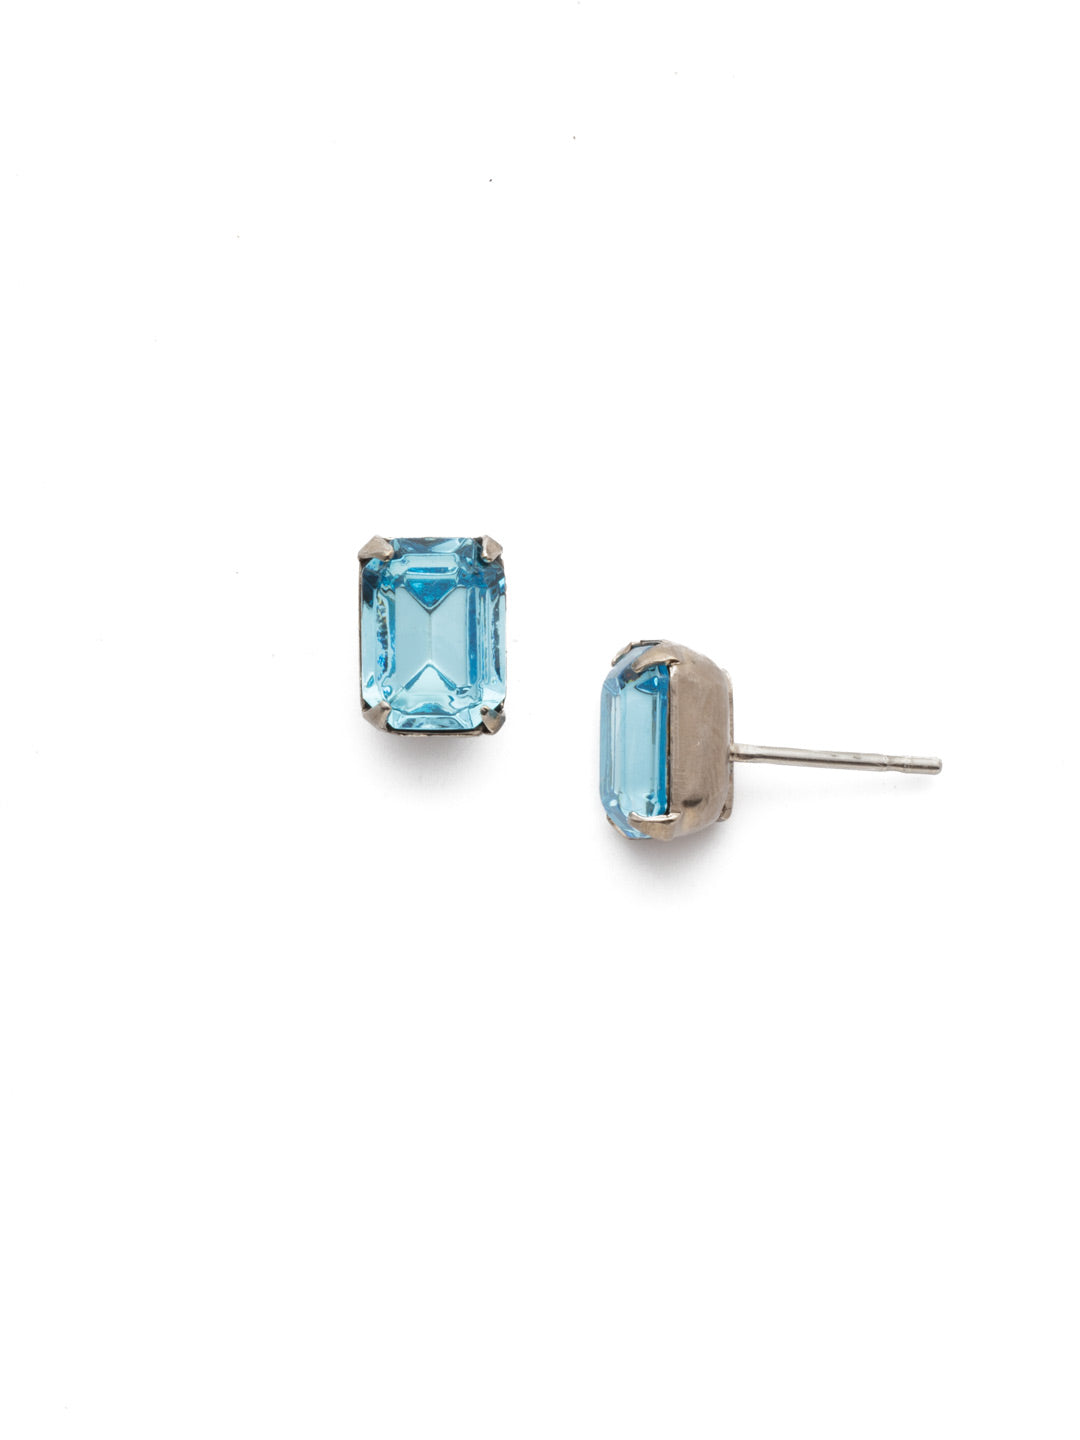 Mini Emerald Cut Stud Earring - Sorrelli Essentials - EBY42ASAQU